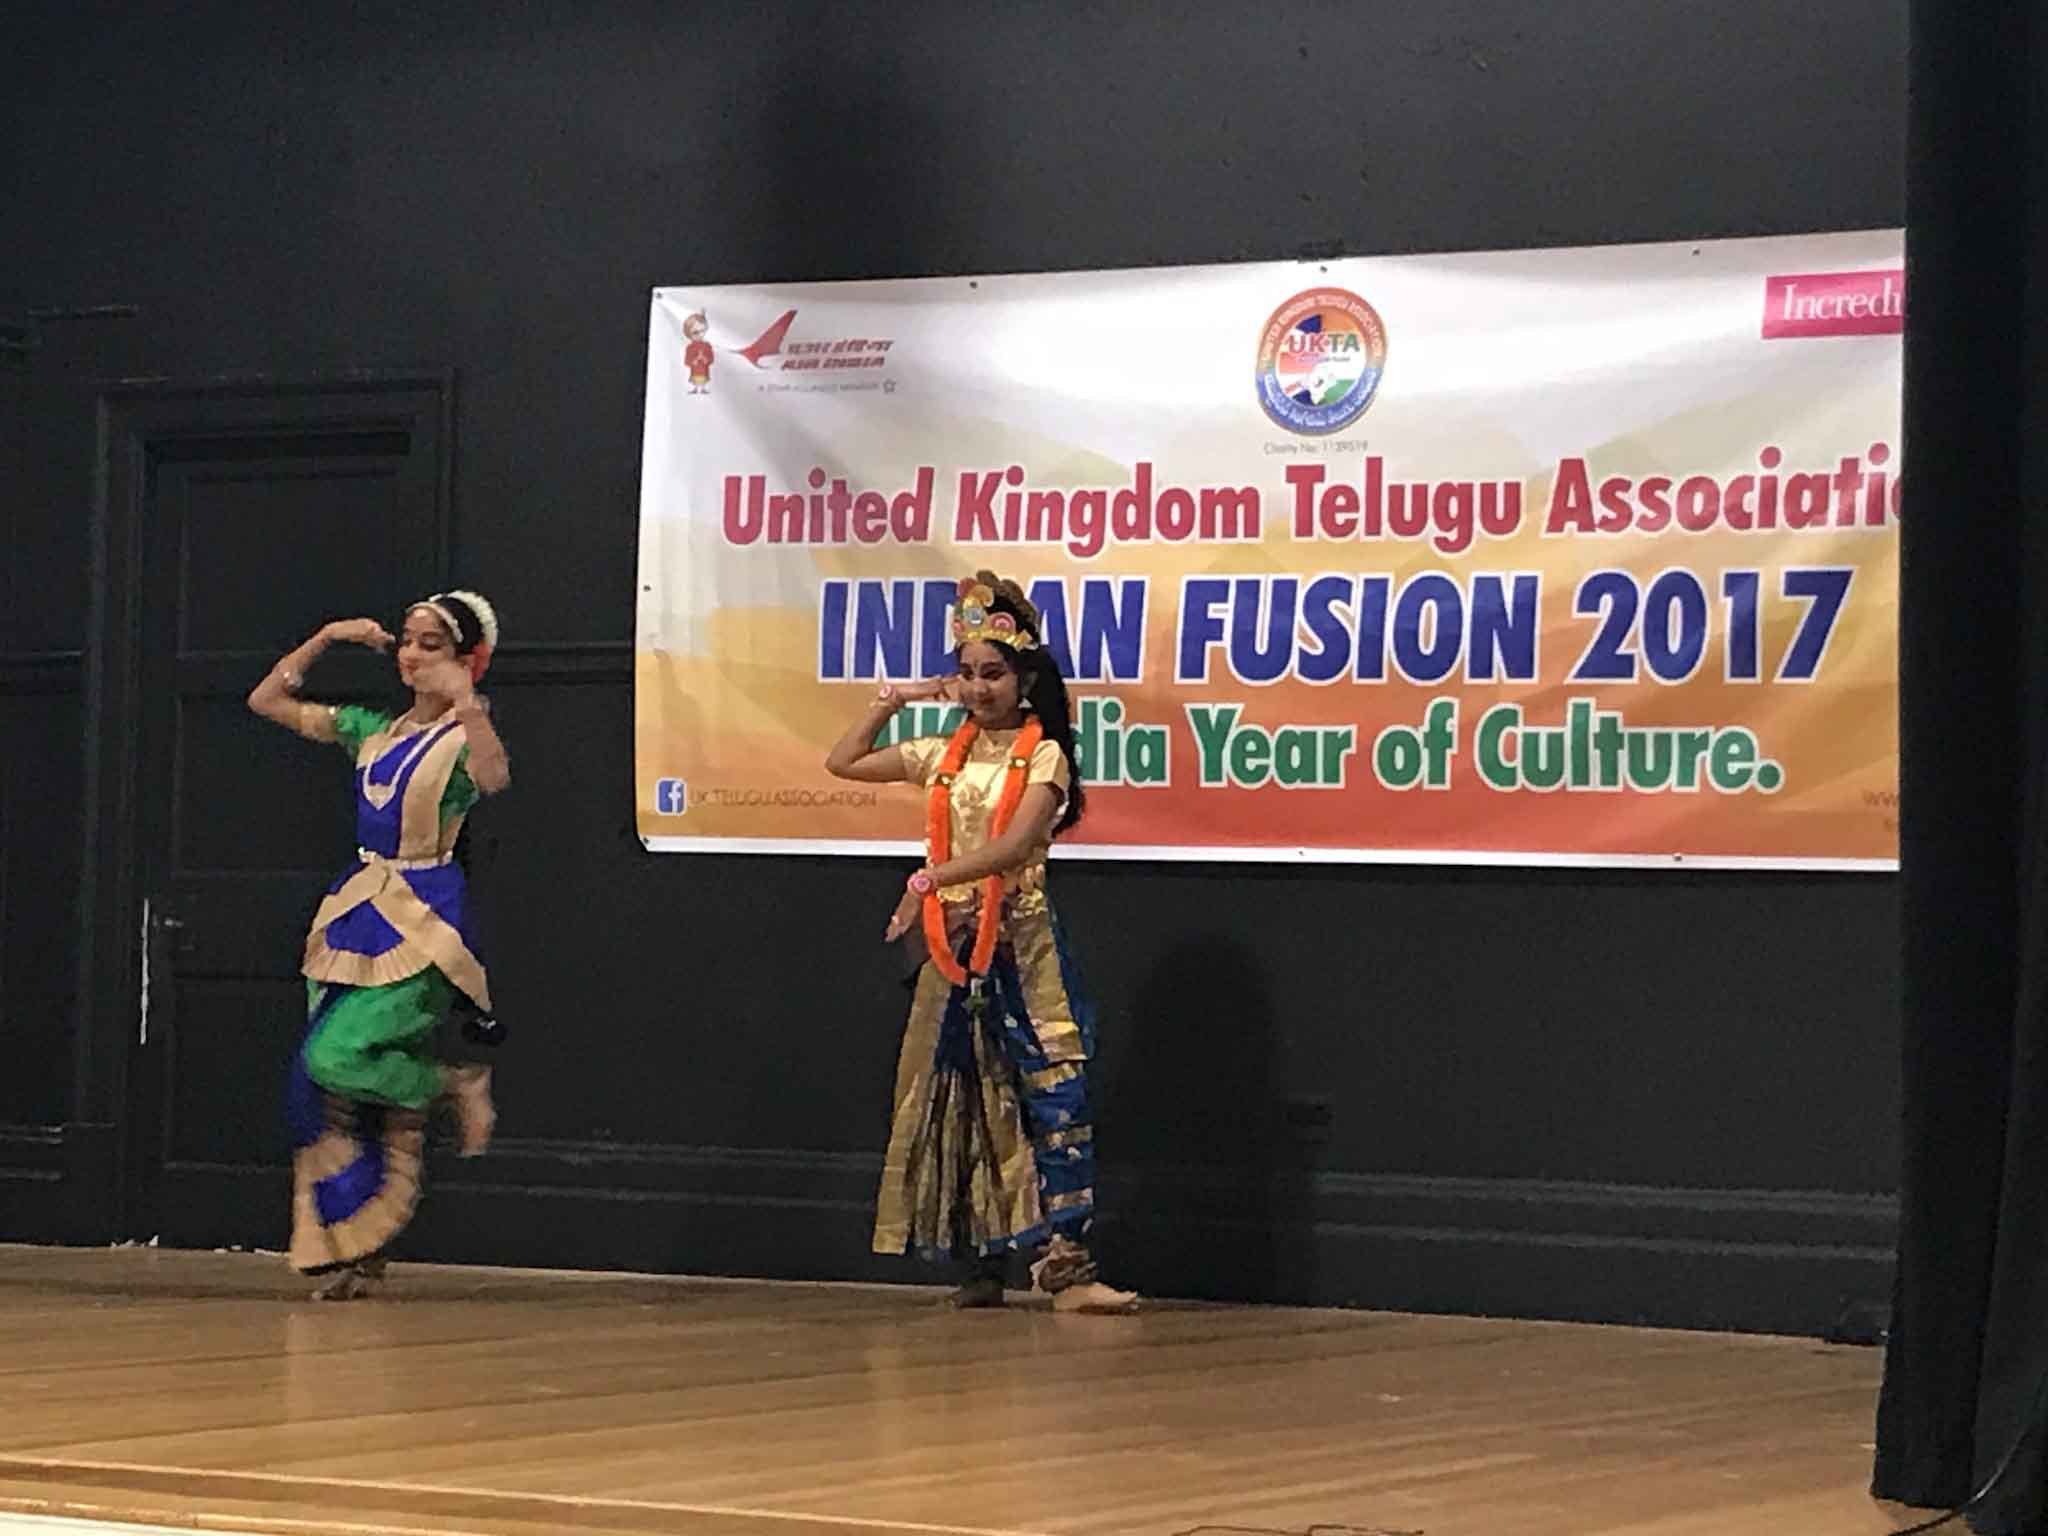 indian fusion@leicester